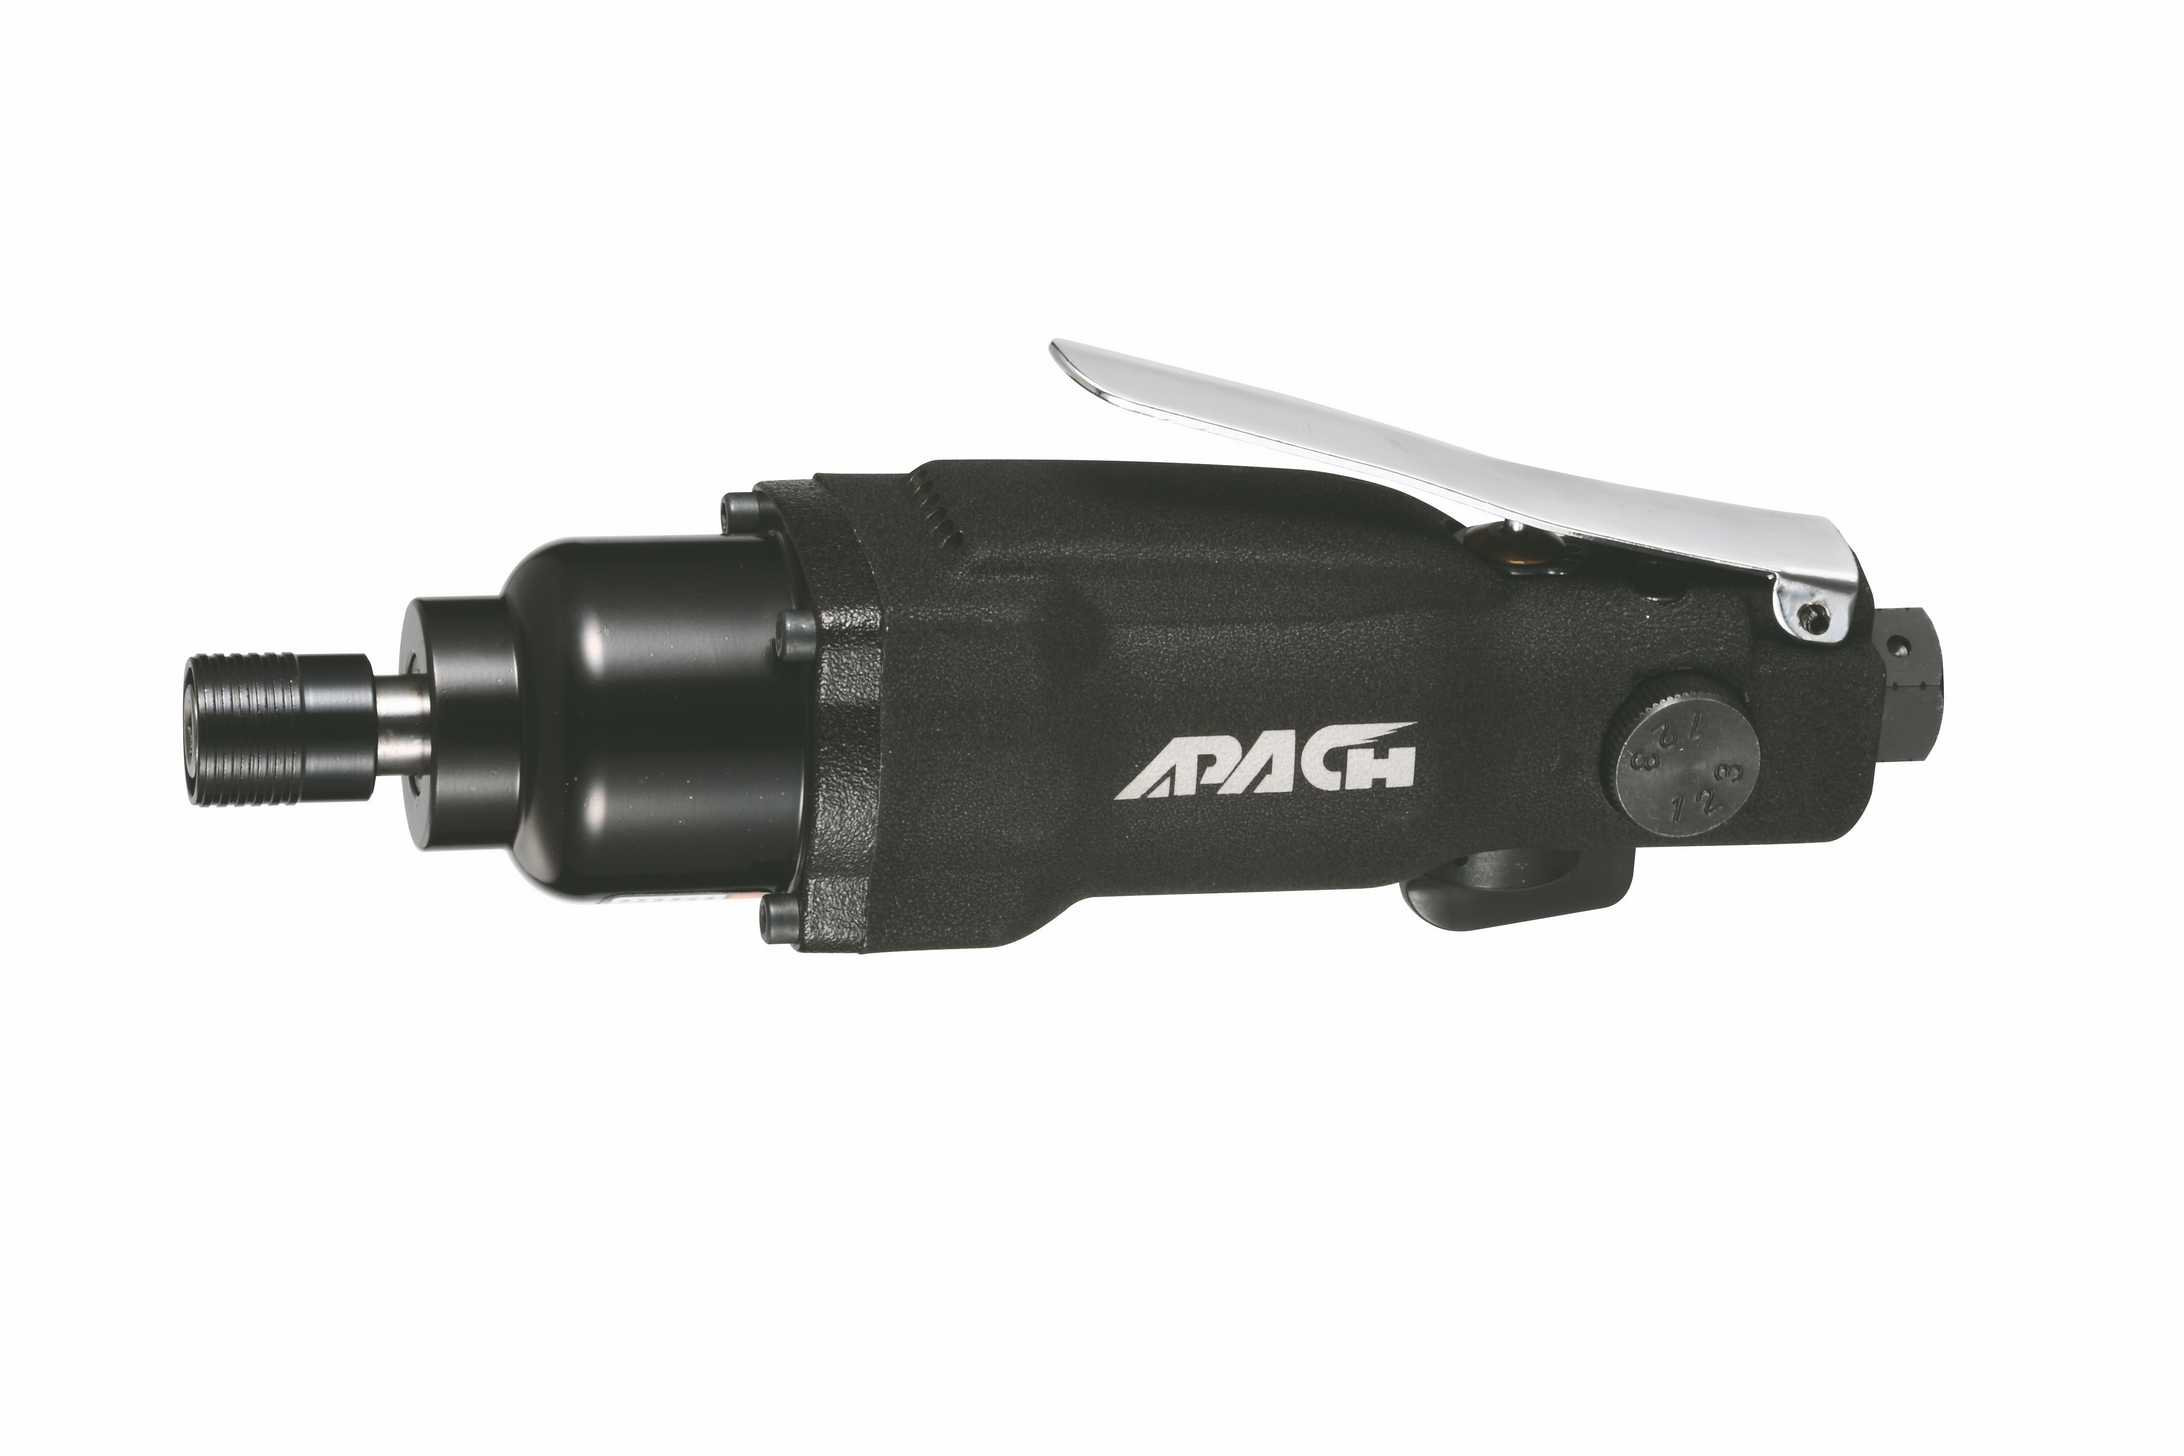 AD409A  High Speed Air Screwdriver